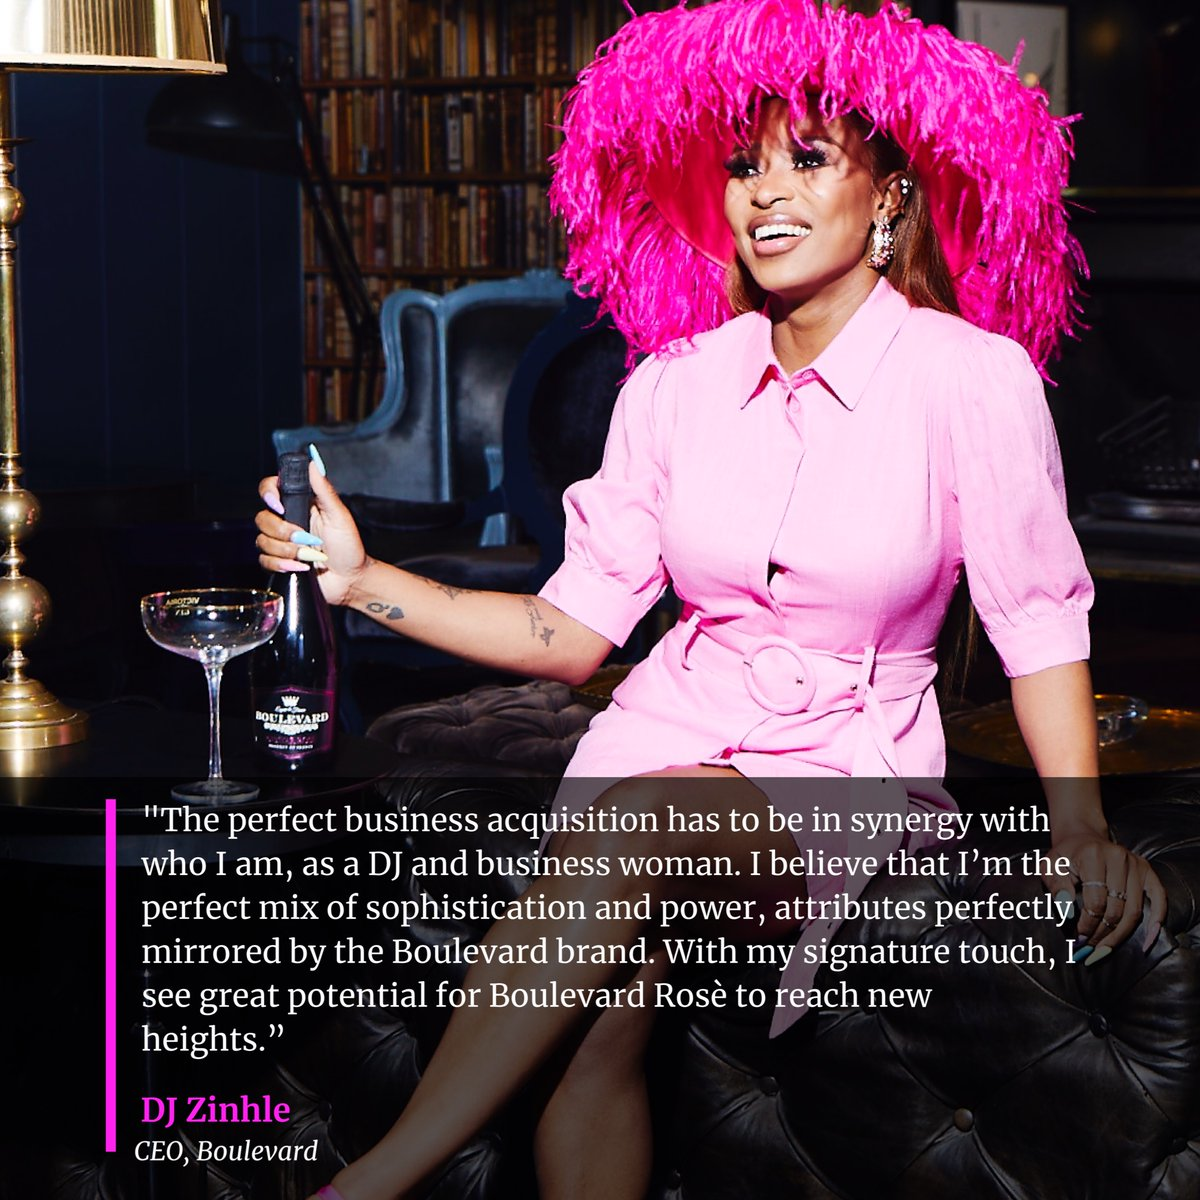 Let me get a bottle of Boulevard Rosé to celebrate!!🥂   My team & I work really hard, words can't describe this moment. Our hard work never went unnoticed.  God really is the greatest. ❤️  Here's to celebrating your  moments, the Boulevard way!!!  Cheers! 🥂 #BoulevardXDJZinhle https://t.co/JsQetl3CEC